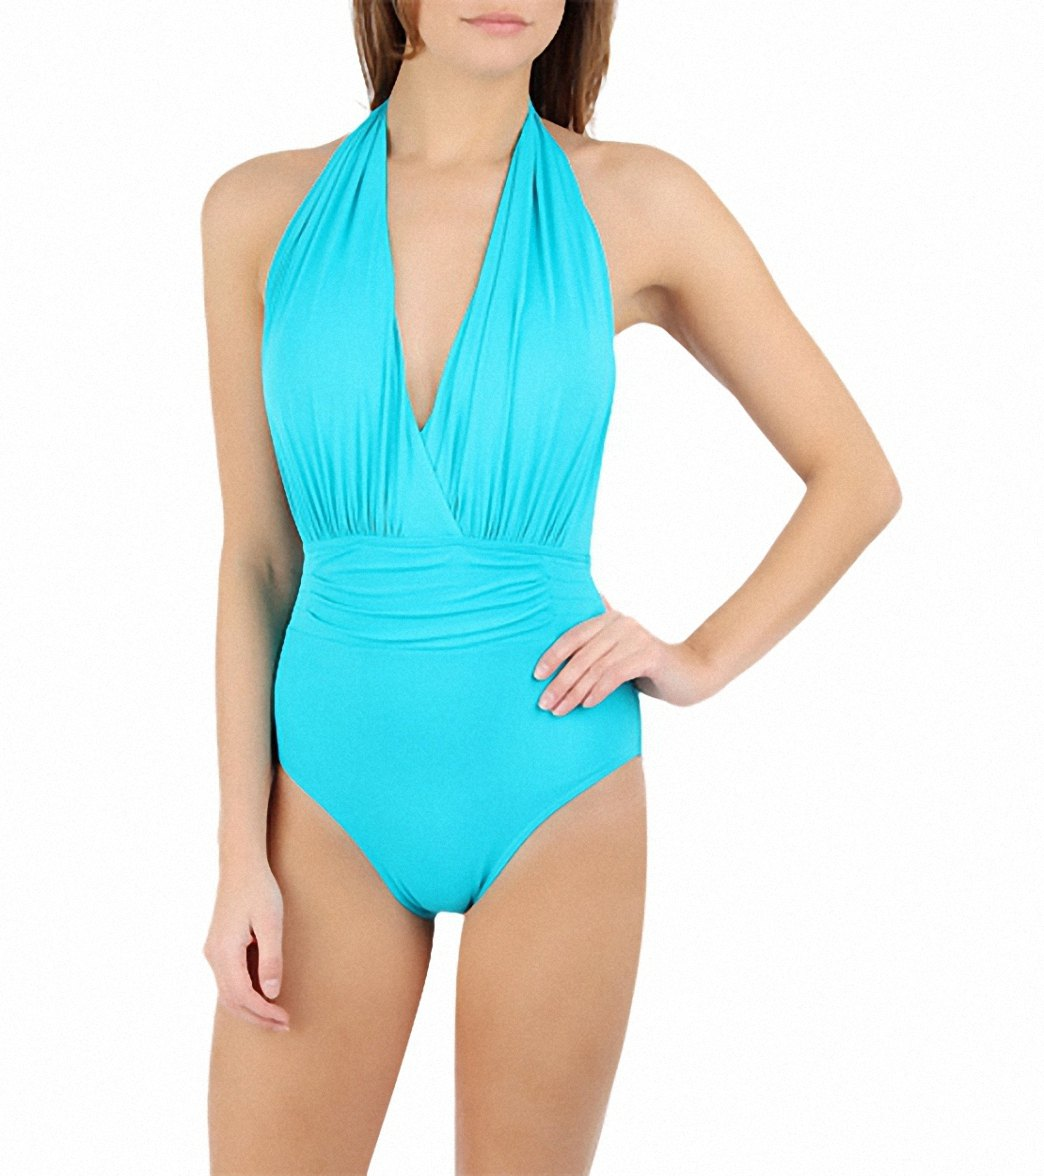 bfecb525c09 Calvin Klein Womens Halter One Piece Swimsuit at SwimOutlet.com ...